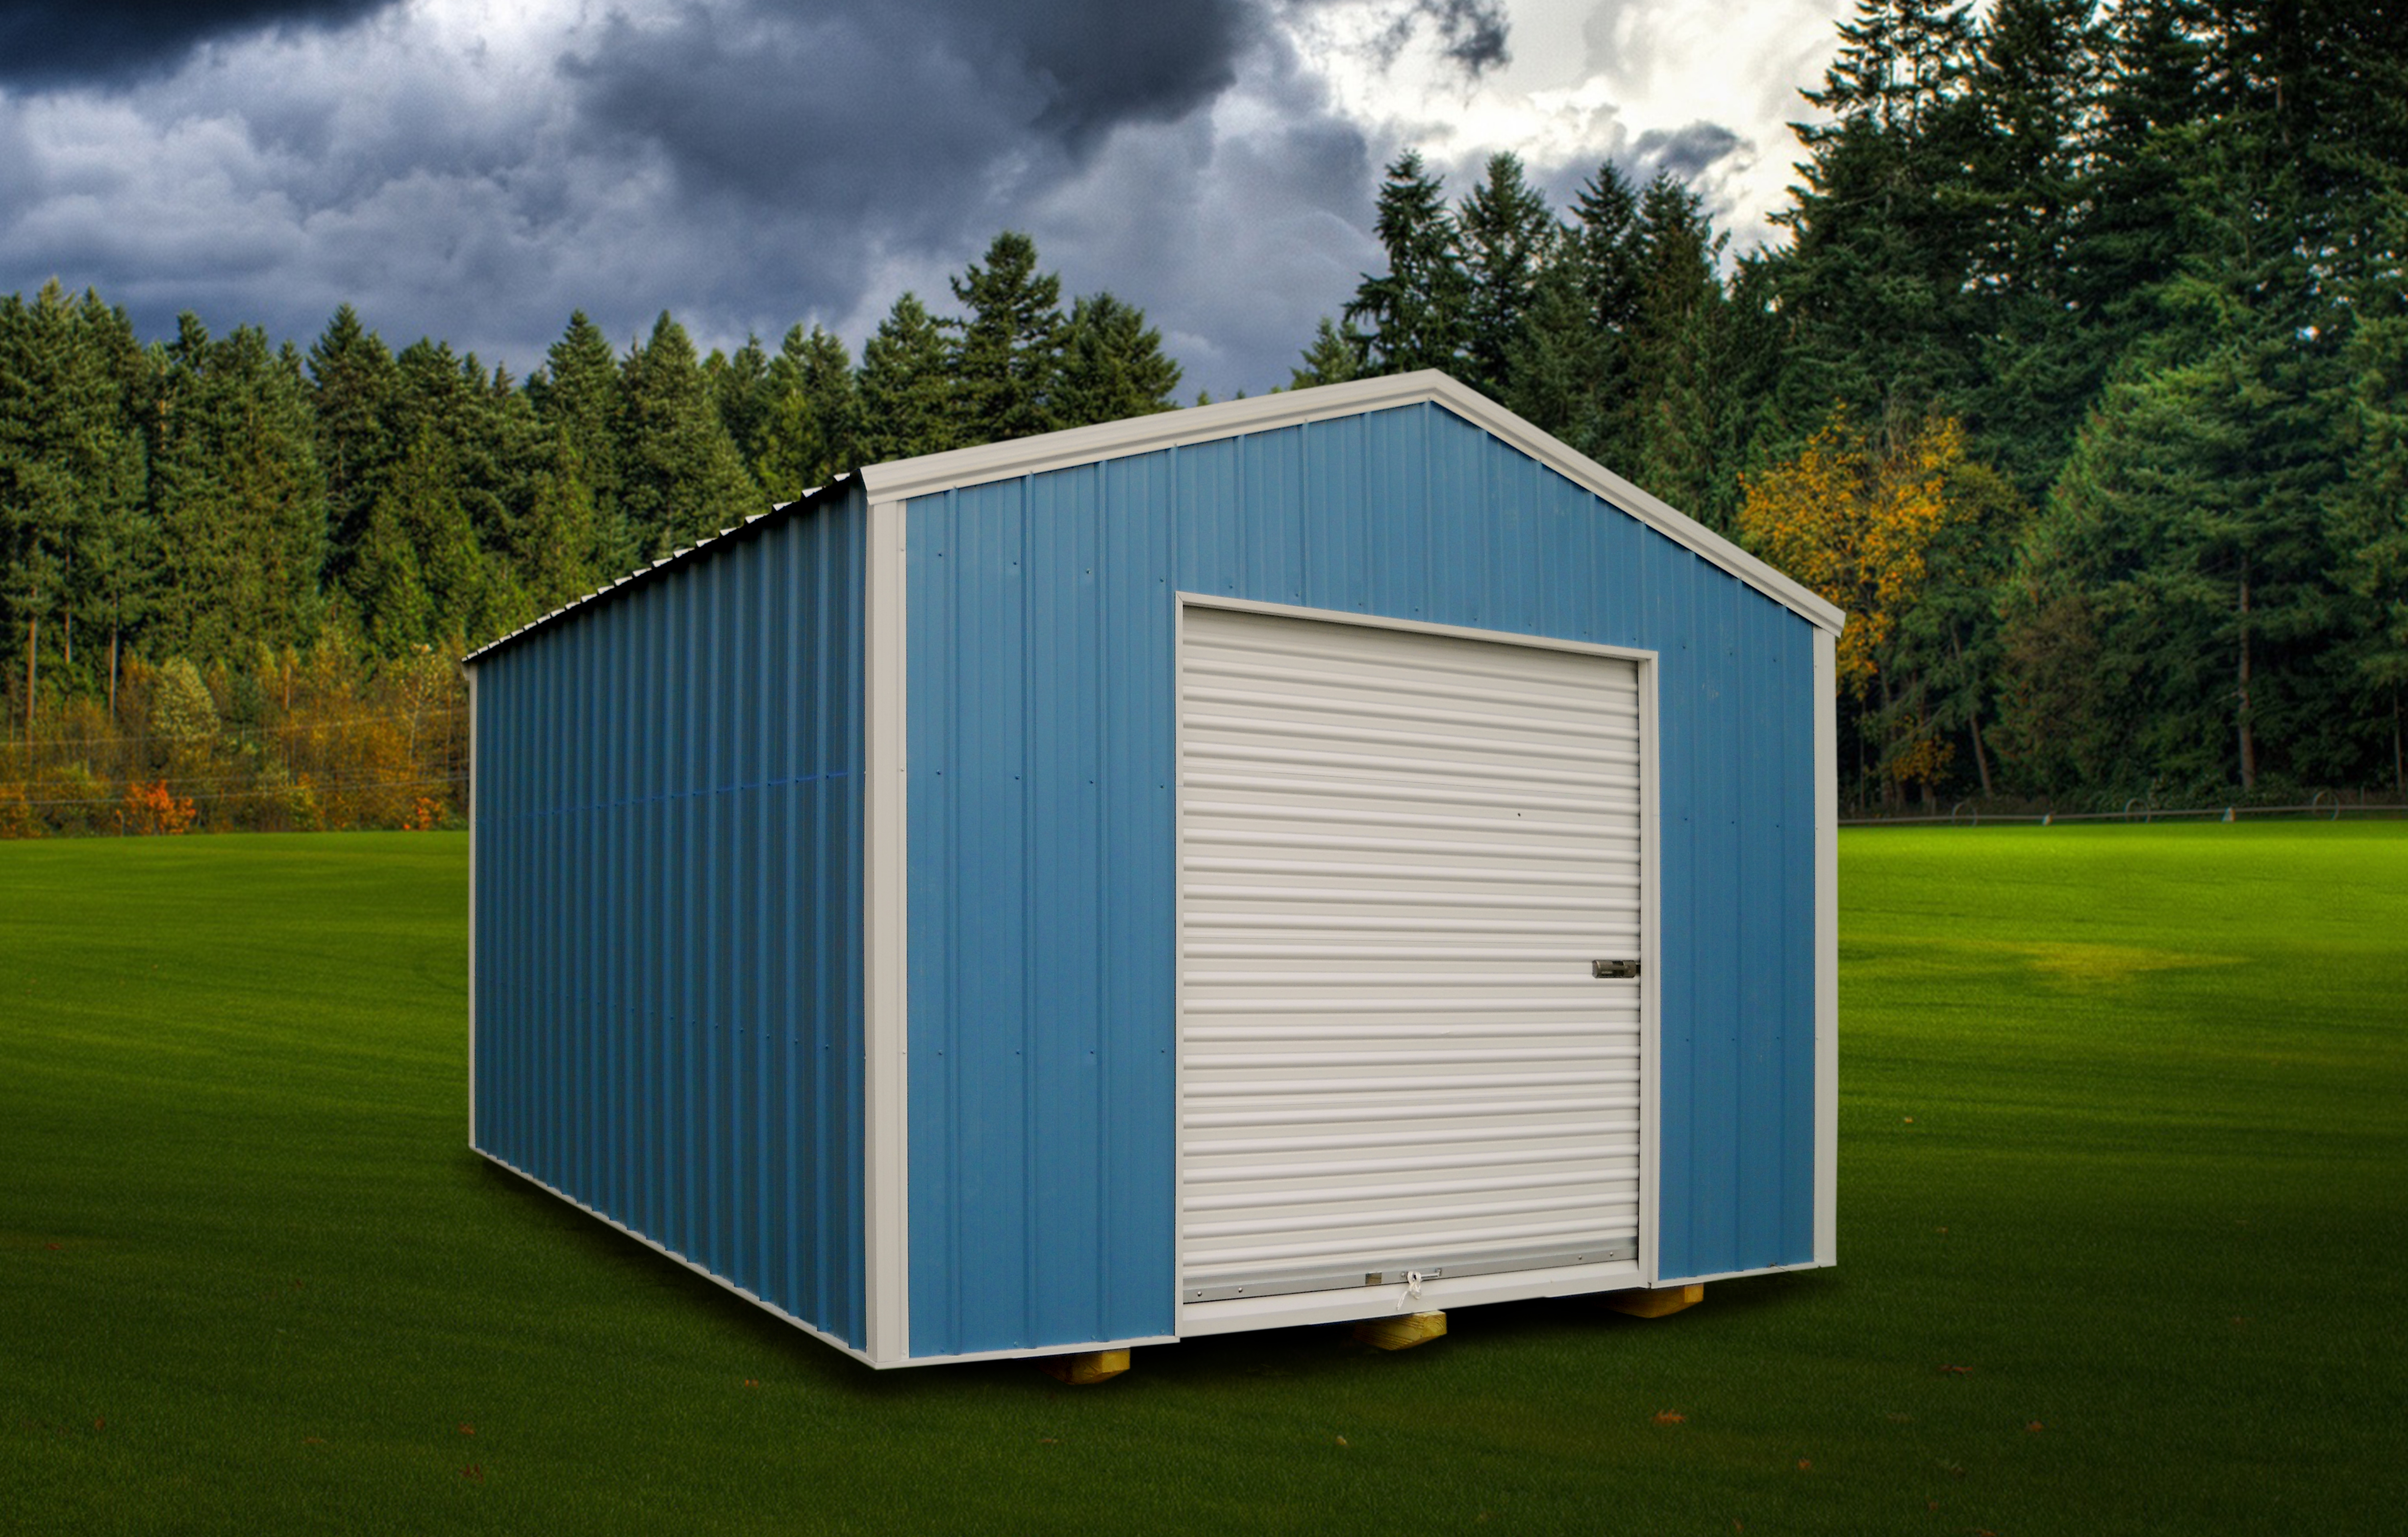 Customized economy storage shed with blue color and white trim detail positioned in residential backyard under dark sky